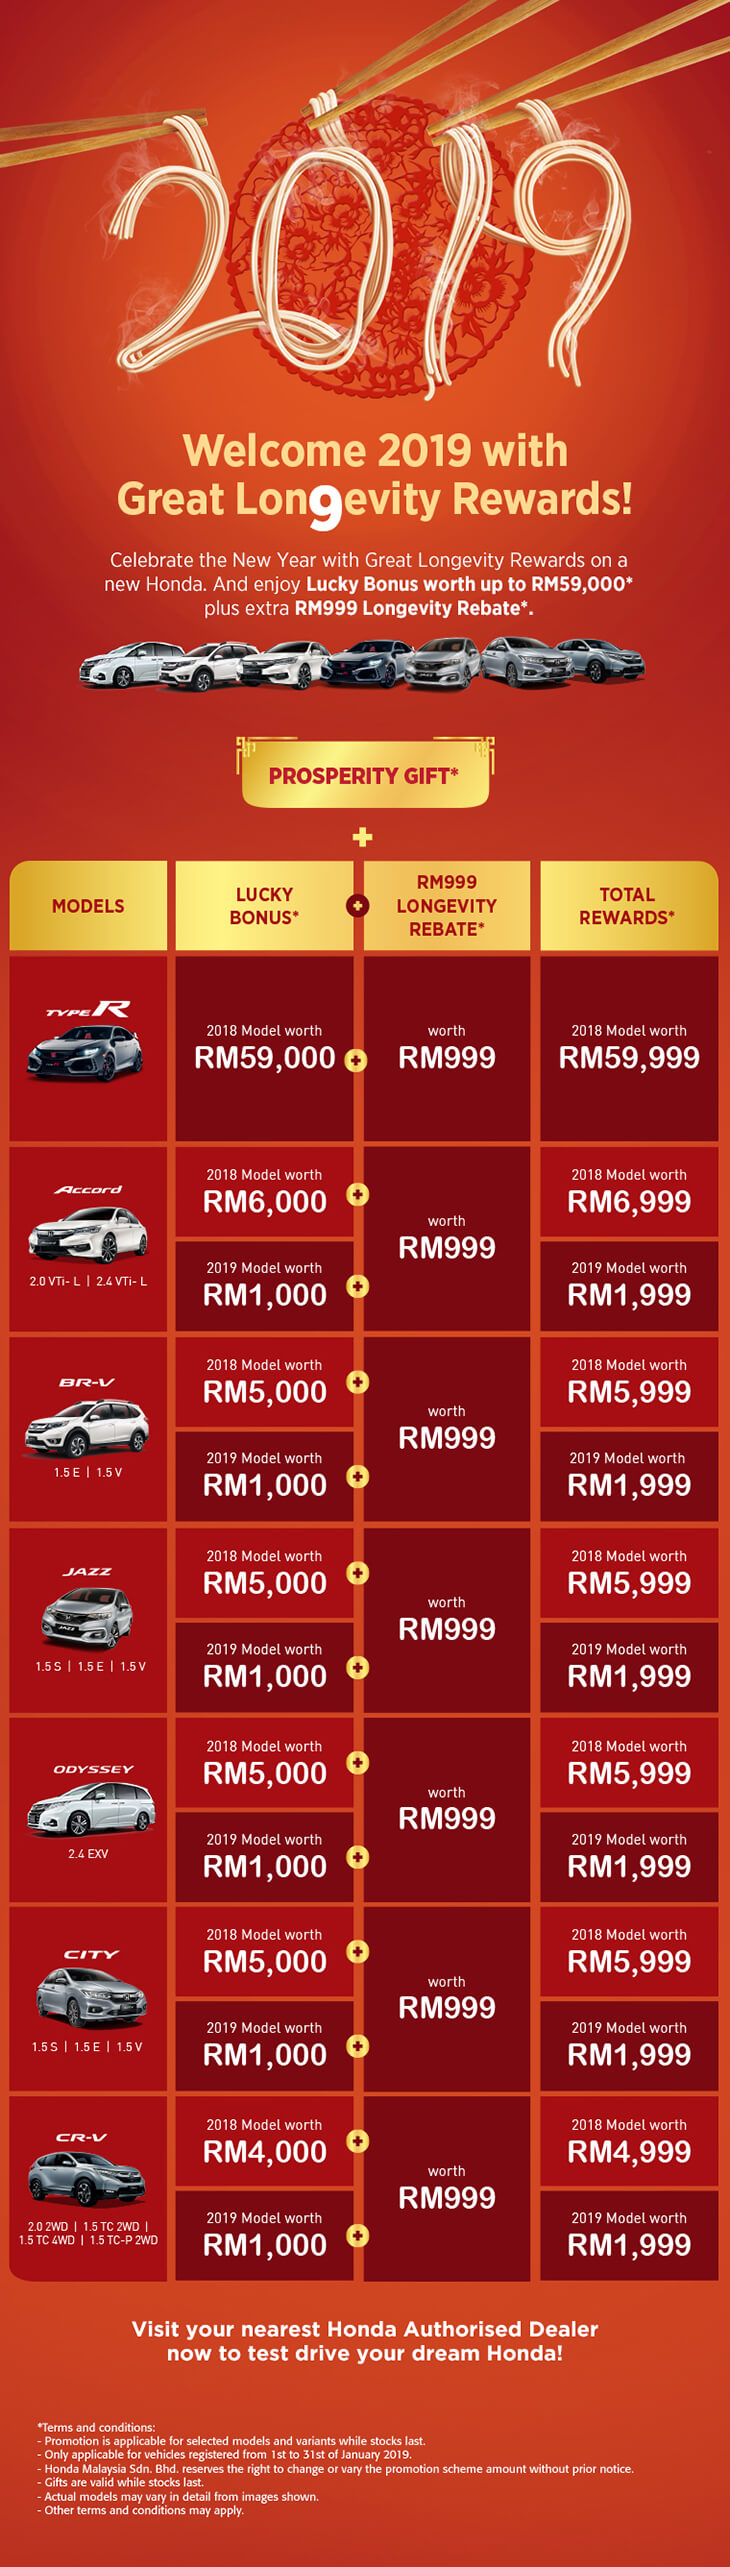 2019 Car Promotions, Offers & Discounts In Malaysia